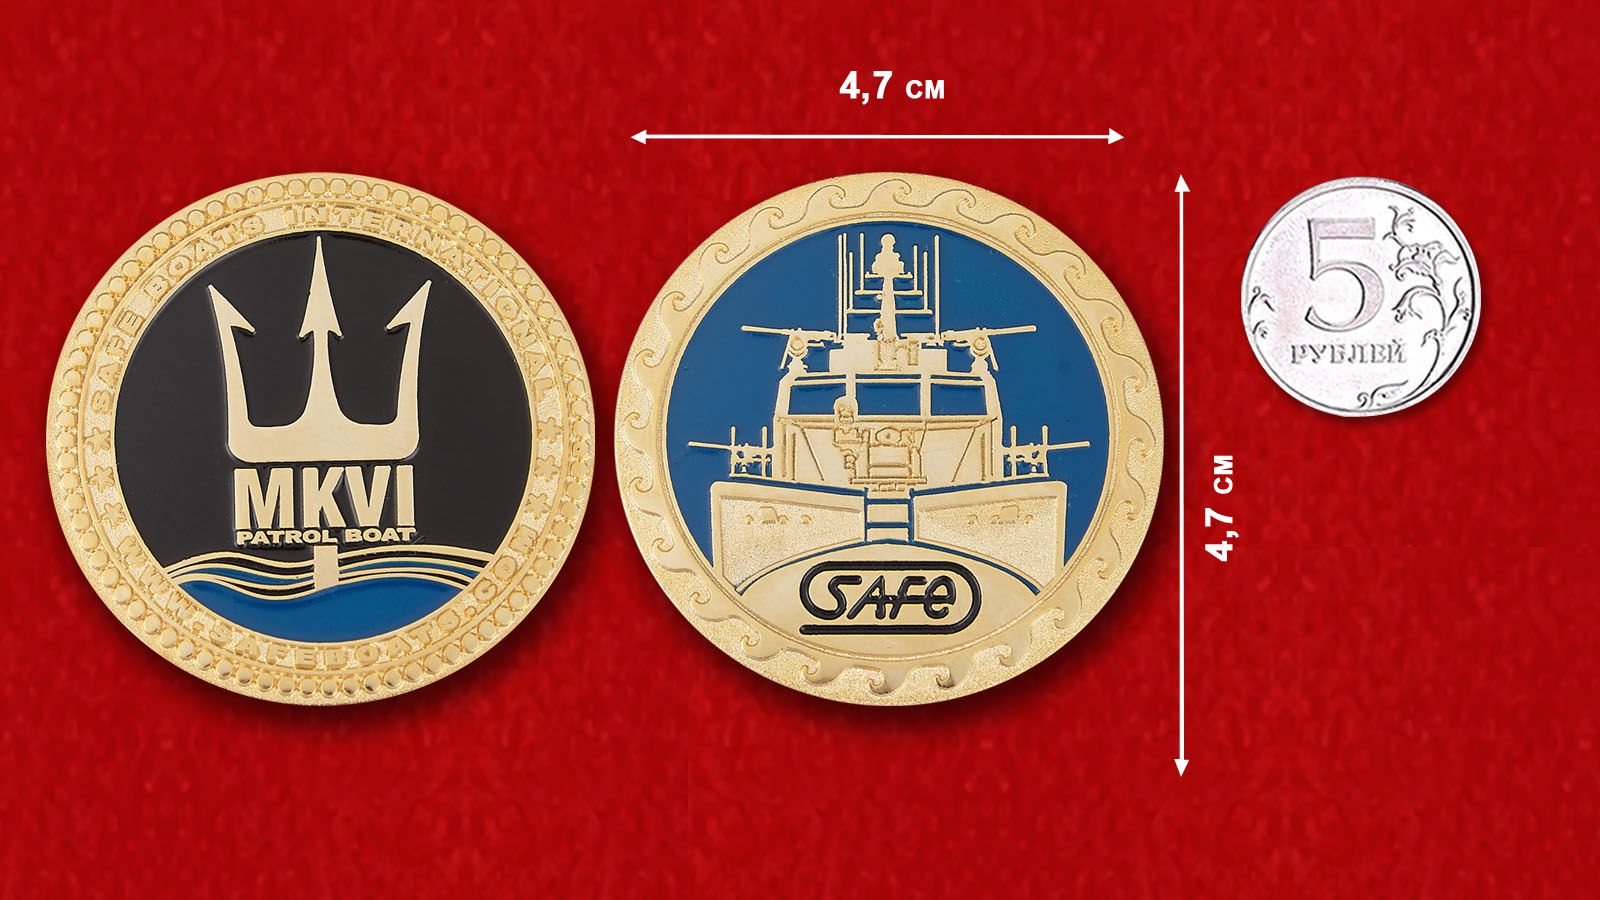 "Challenge Coin ""US Navy patrol boat Mark VI"" - comparative size"